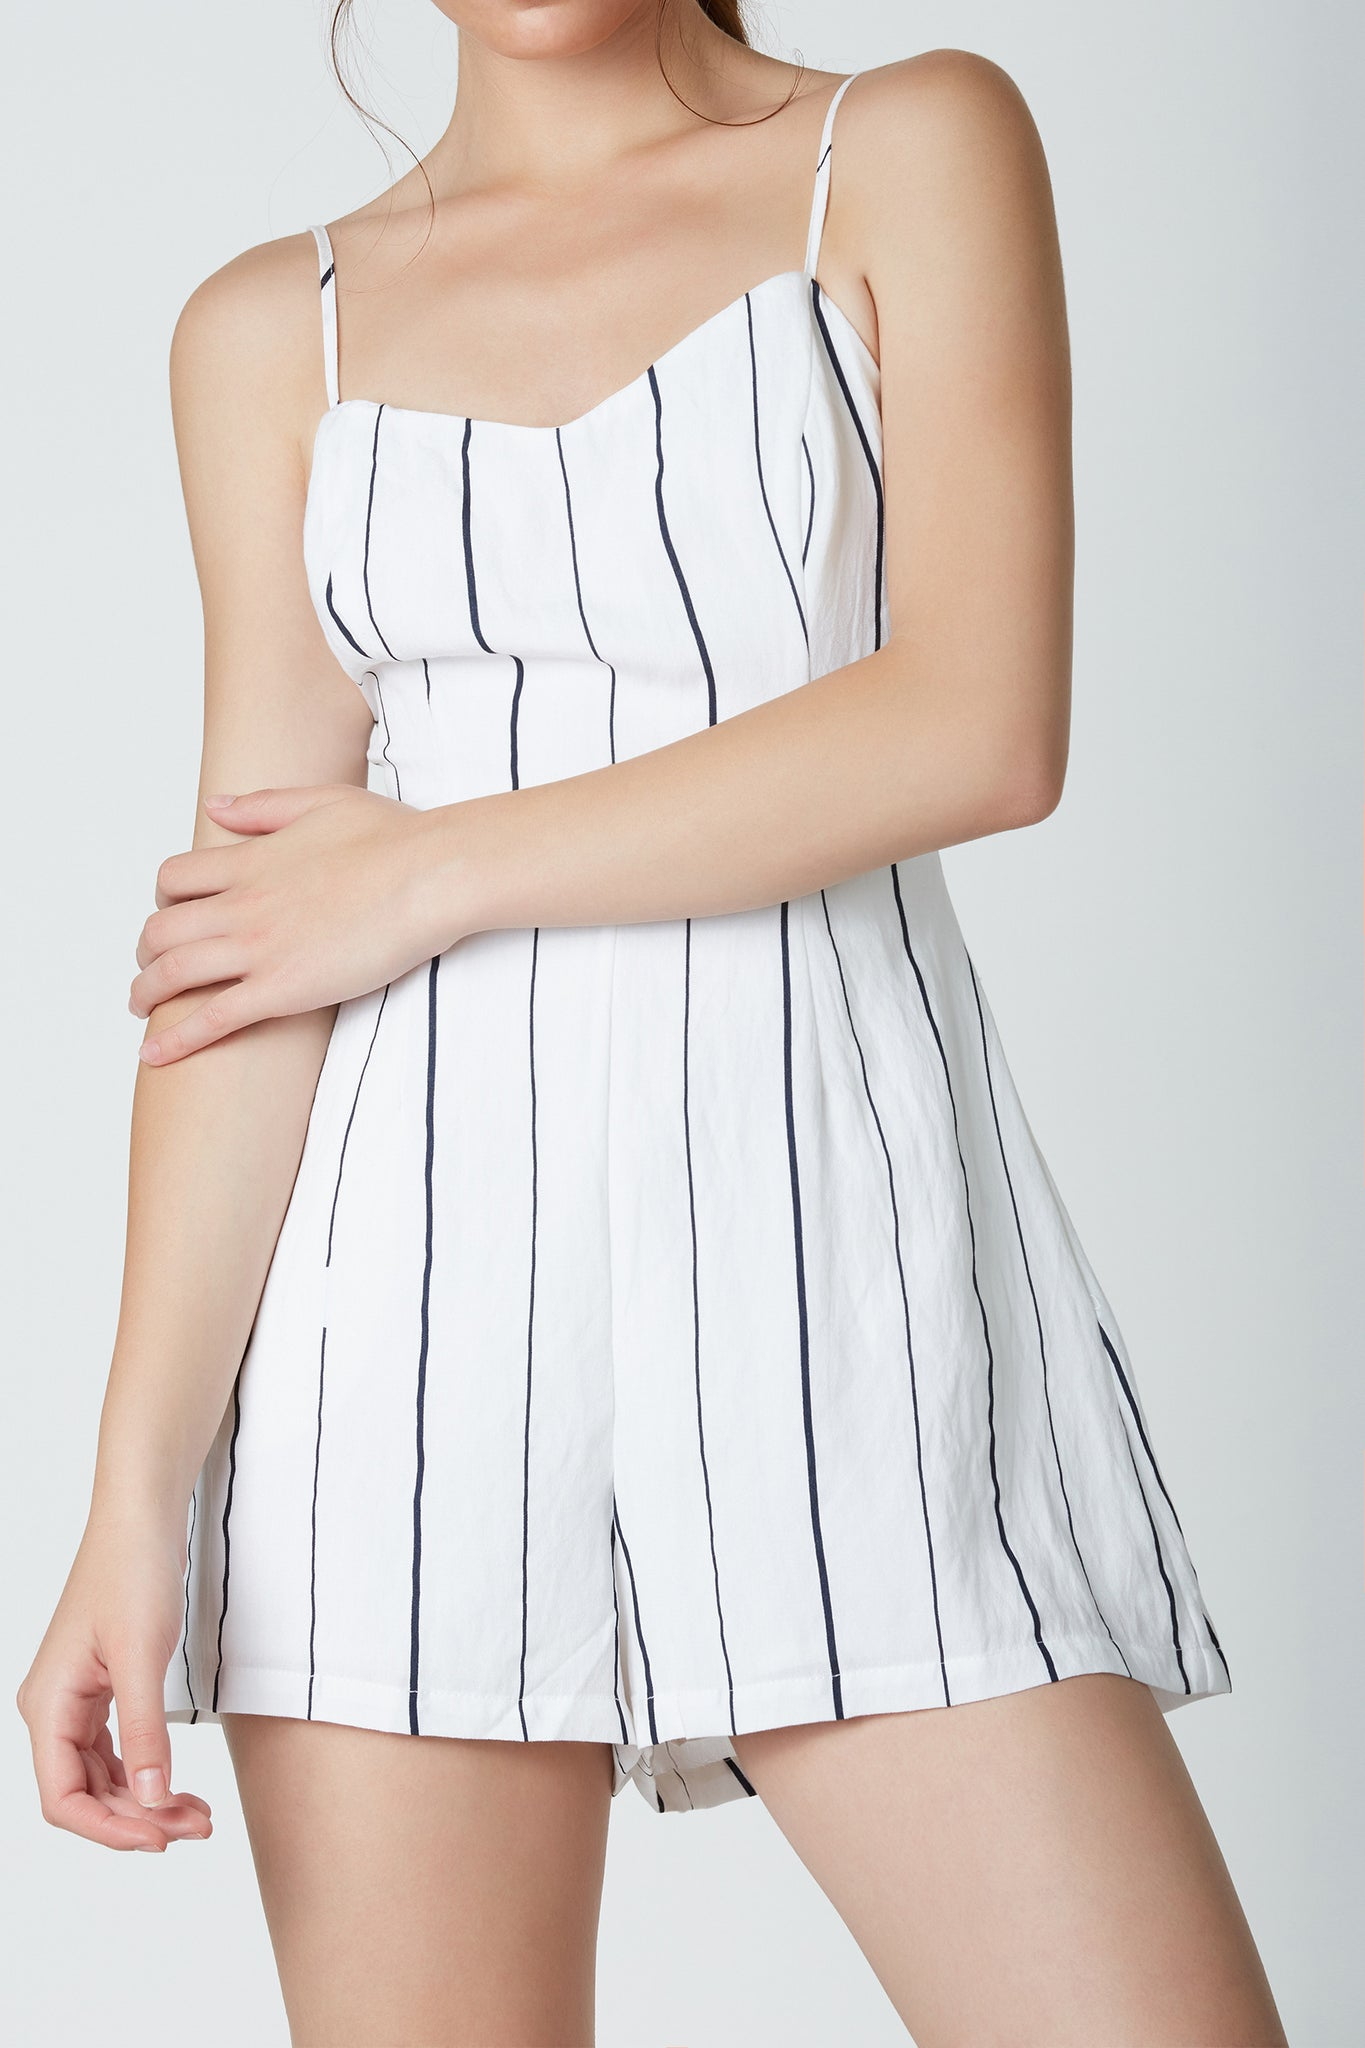 Chic sleeveless romper with stripe patterns throughout. Adjustable shoulder straps with cut out in back and ties for added detail.